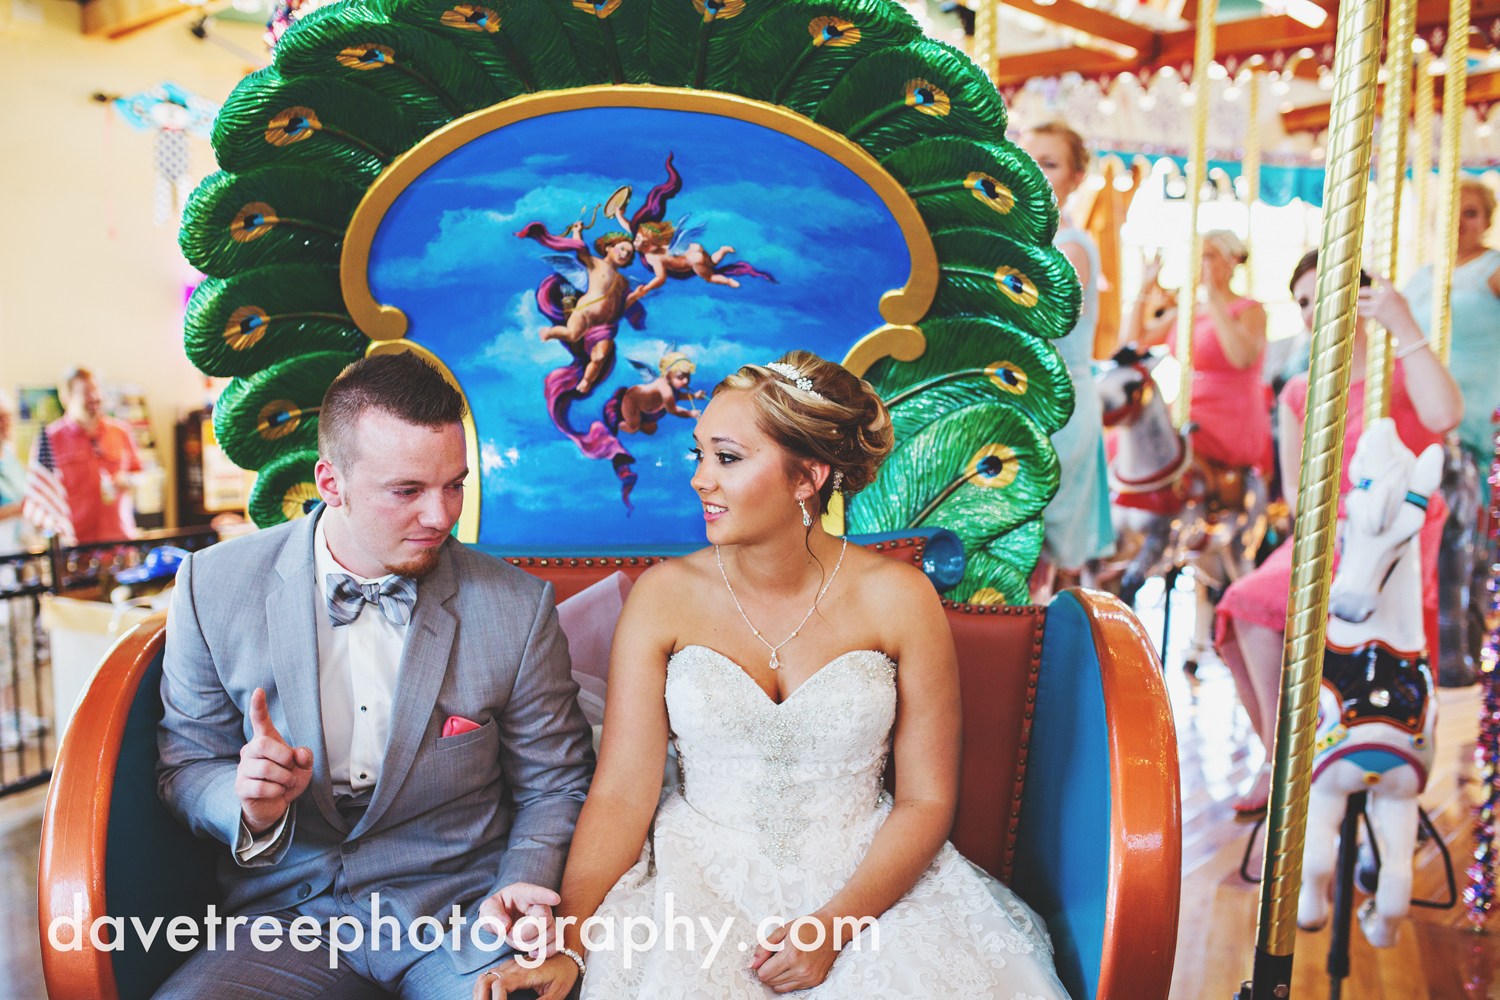 veranda_wedding_photographer_st_joseph_wedding_33.jpg